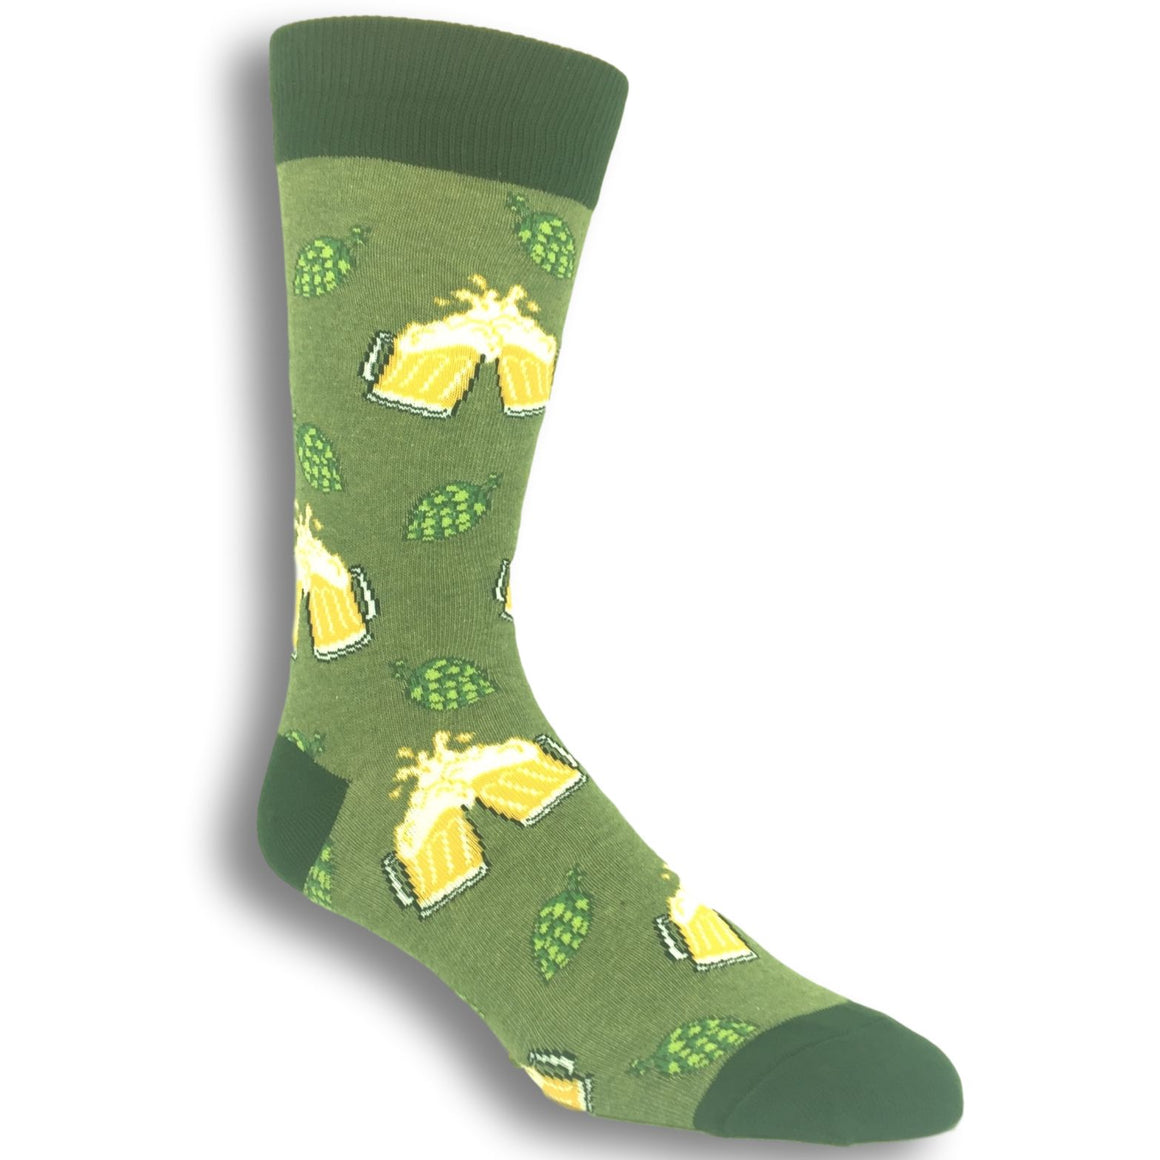 Hoppier Together Beer Socks In Green By SockSmith